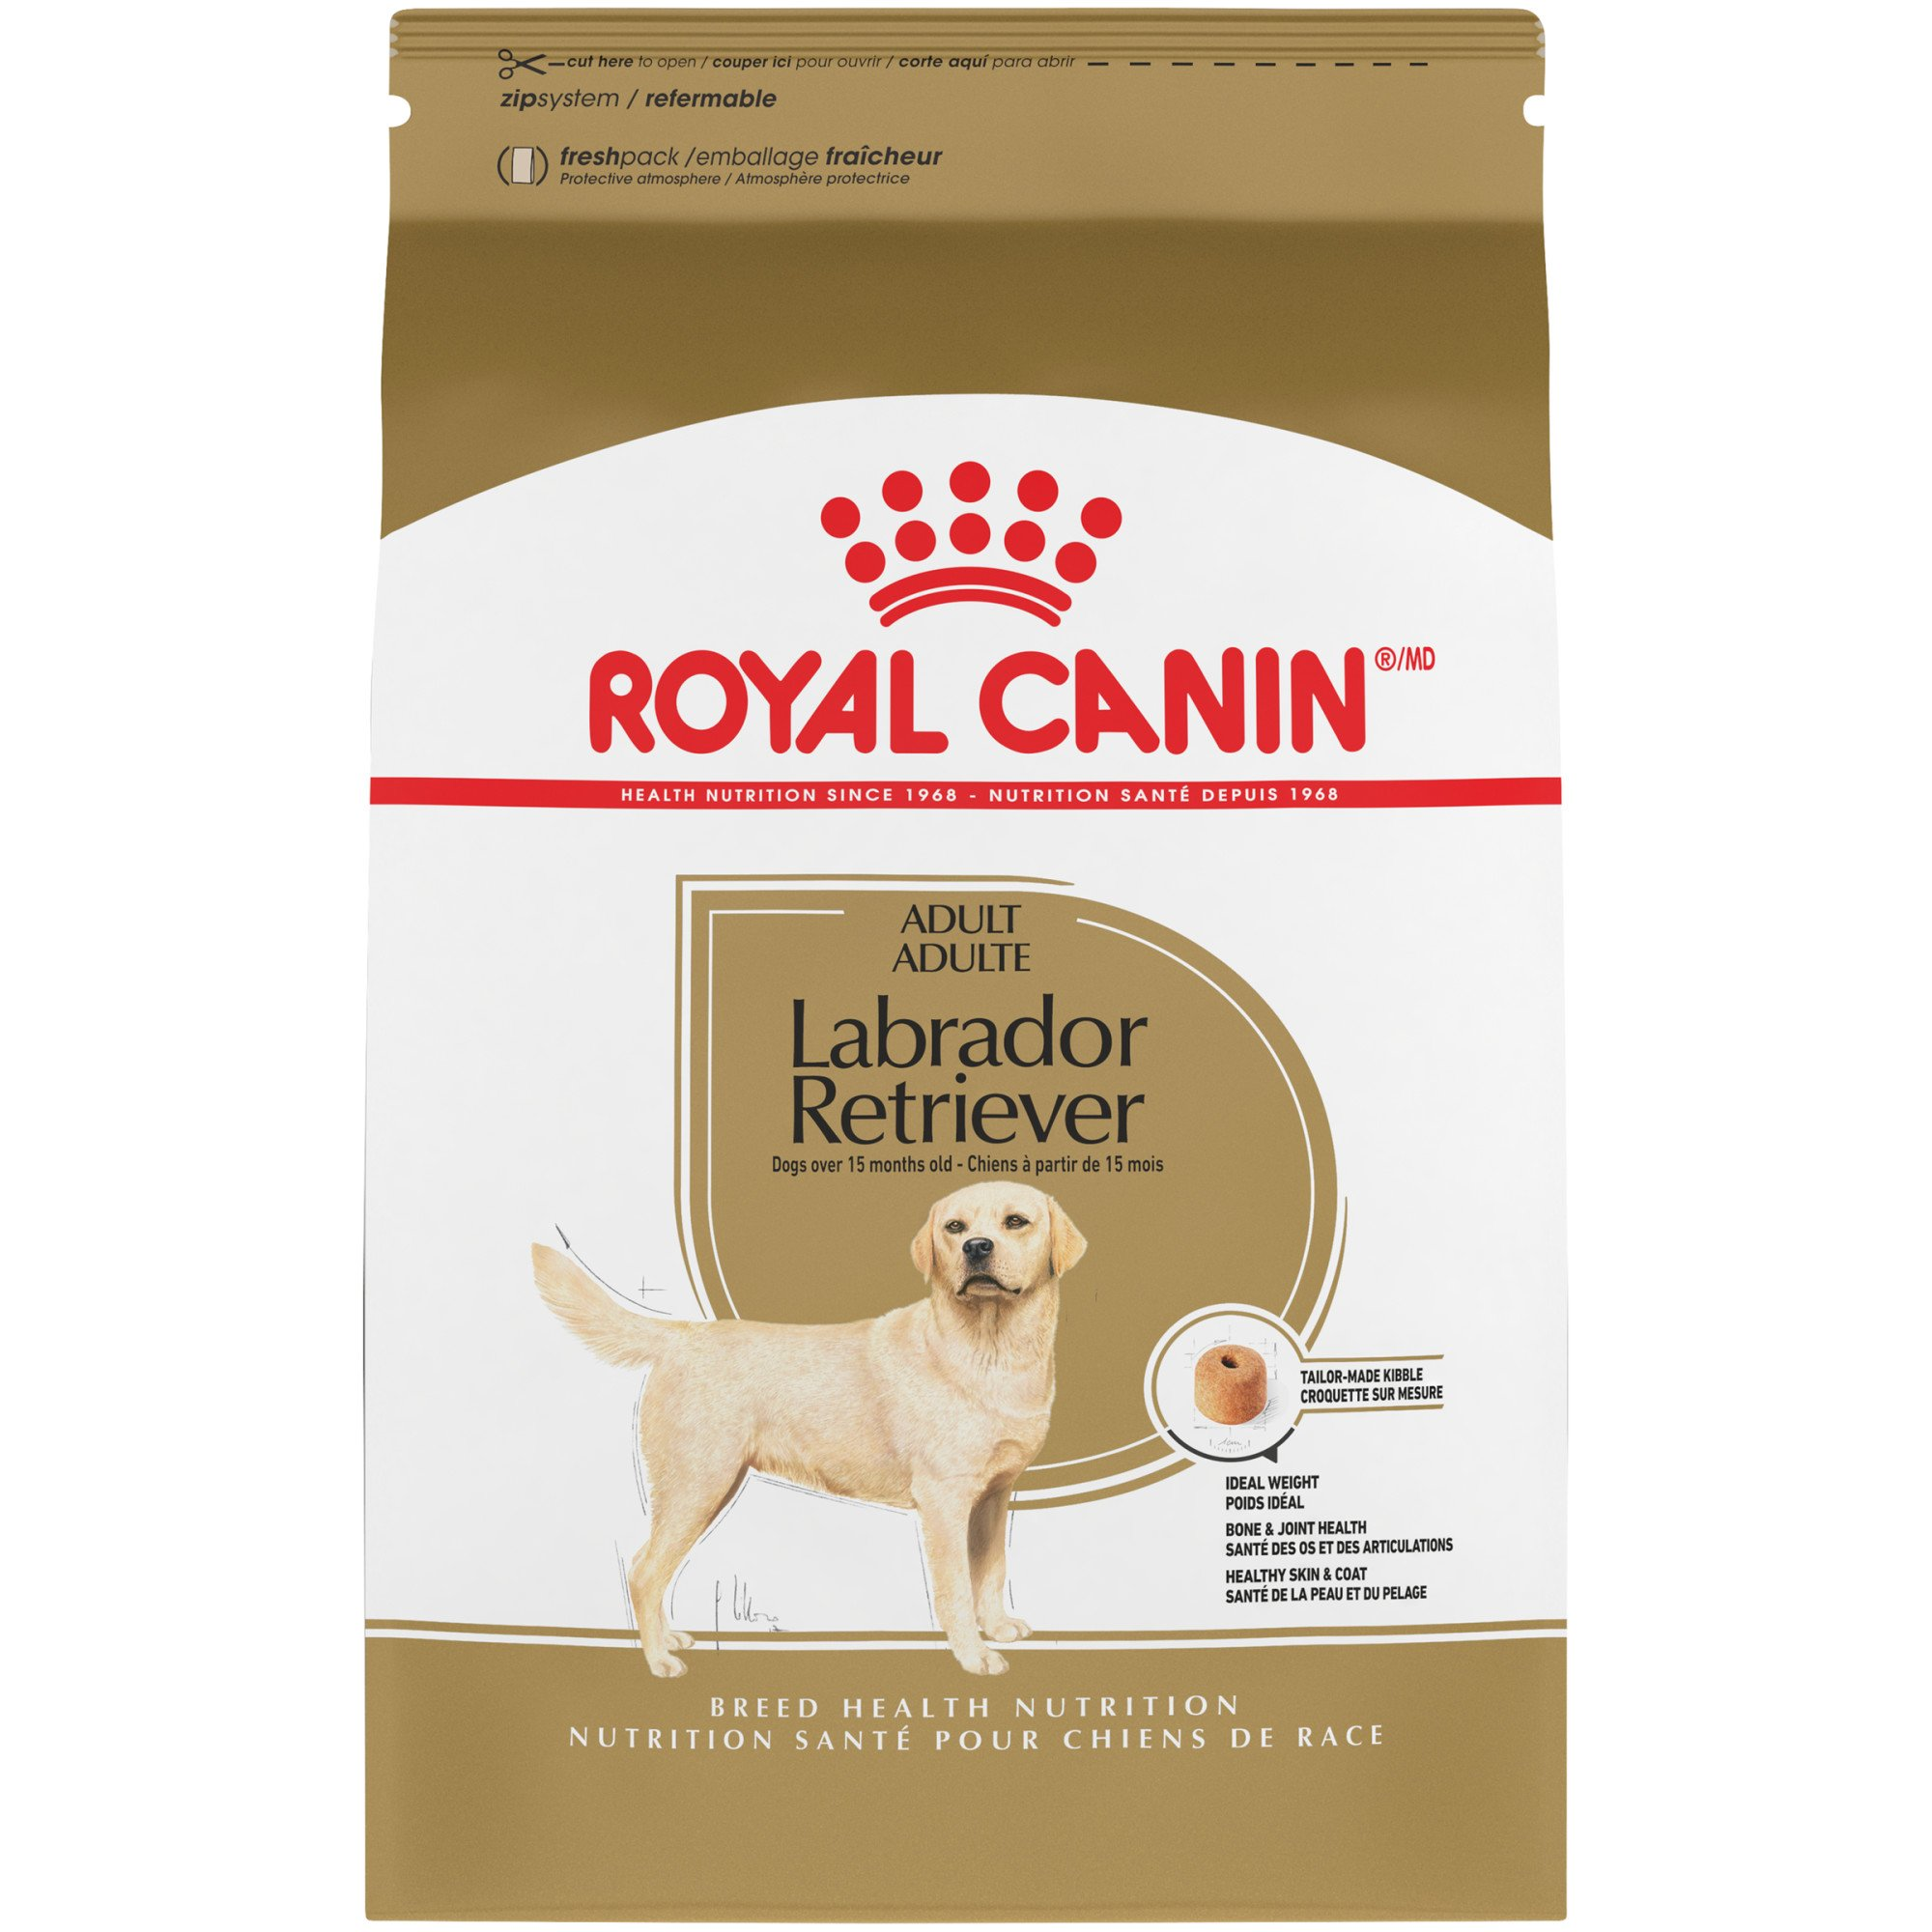 royal canin breed health nutrition labrador retriever adult dry dog food petco. Black Bedroom Furniture Sets. Home Design Ideas